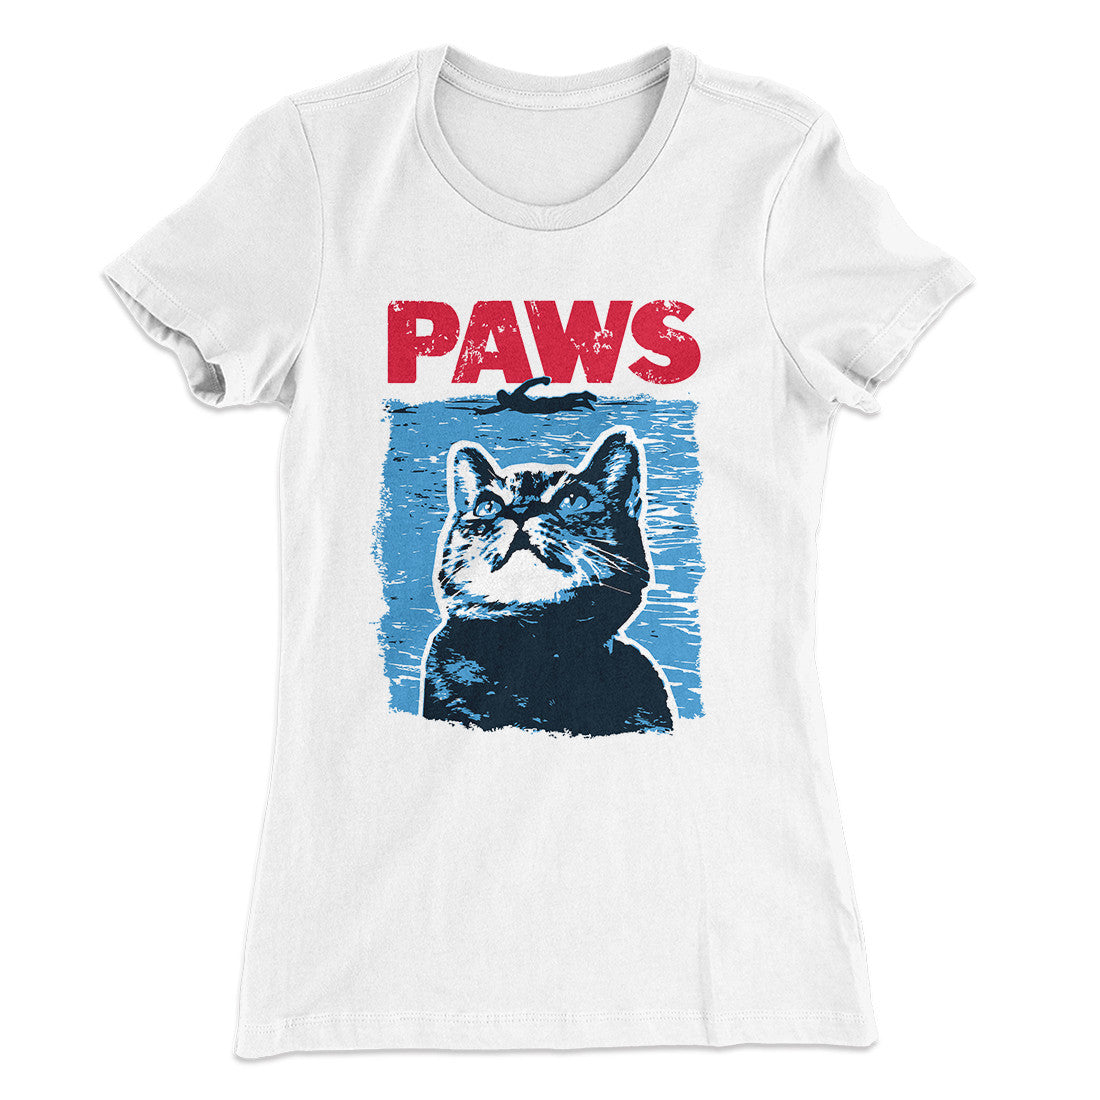 d70f66dc2 PAWS Women's T-Shirt-Solid White - Famous IRL